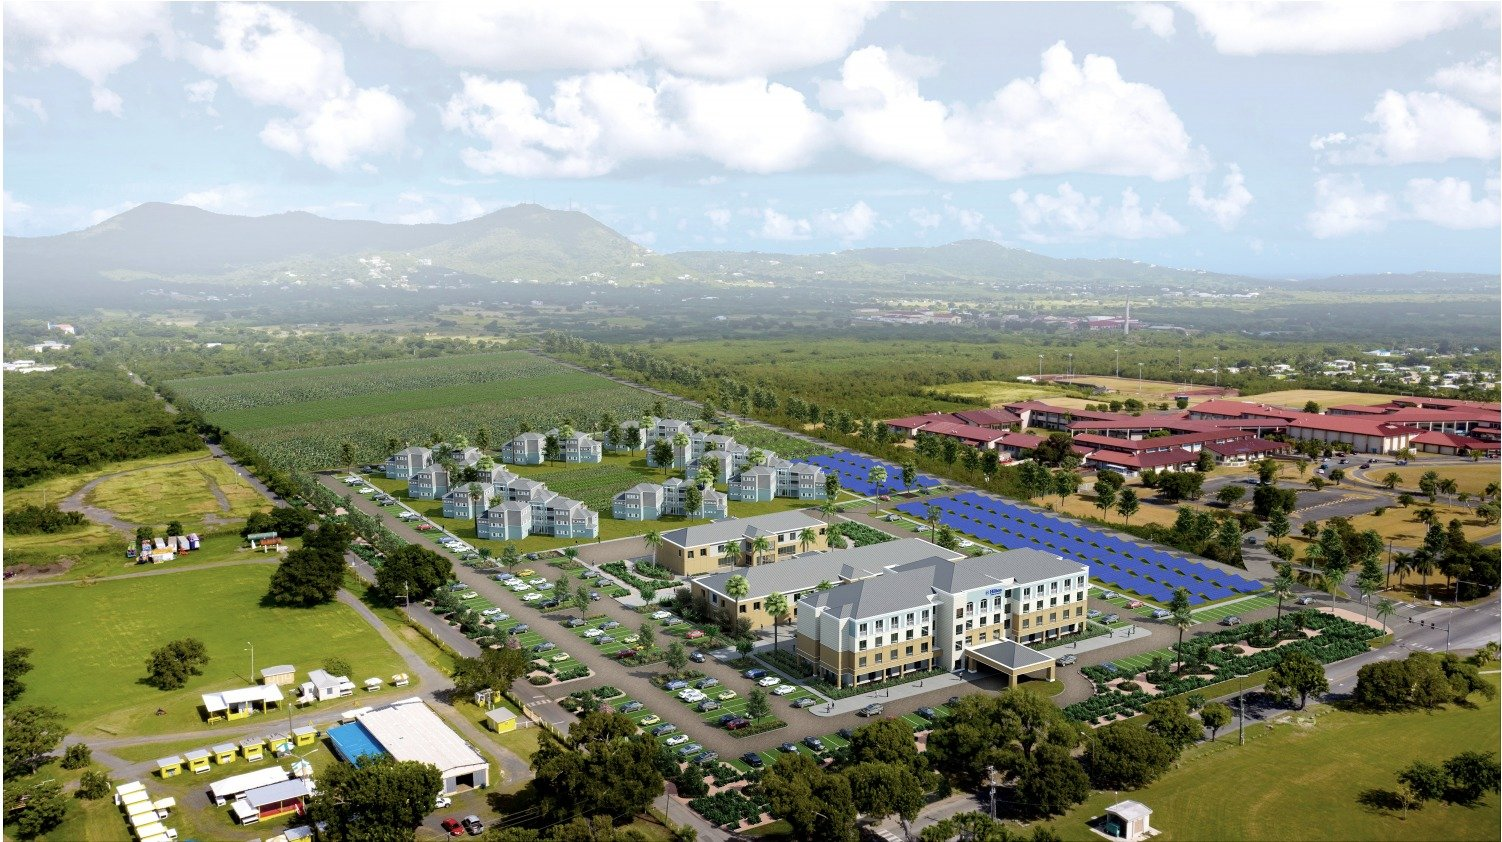 , UVI Research and Technology Park – Tech Village: A St. Croix Sustainable Economic Development Project, The Circular Economy